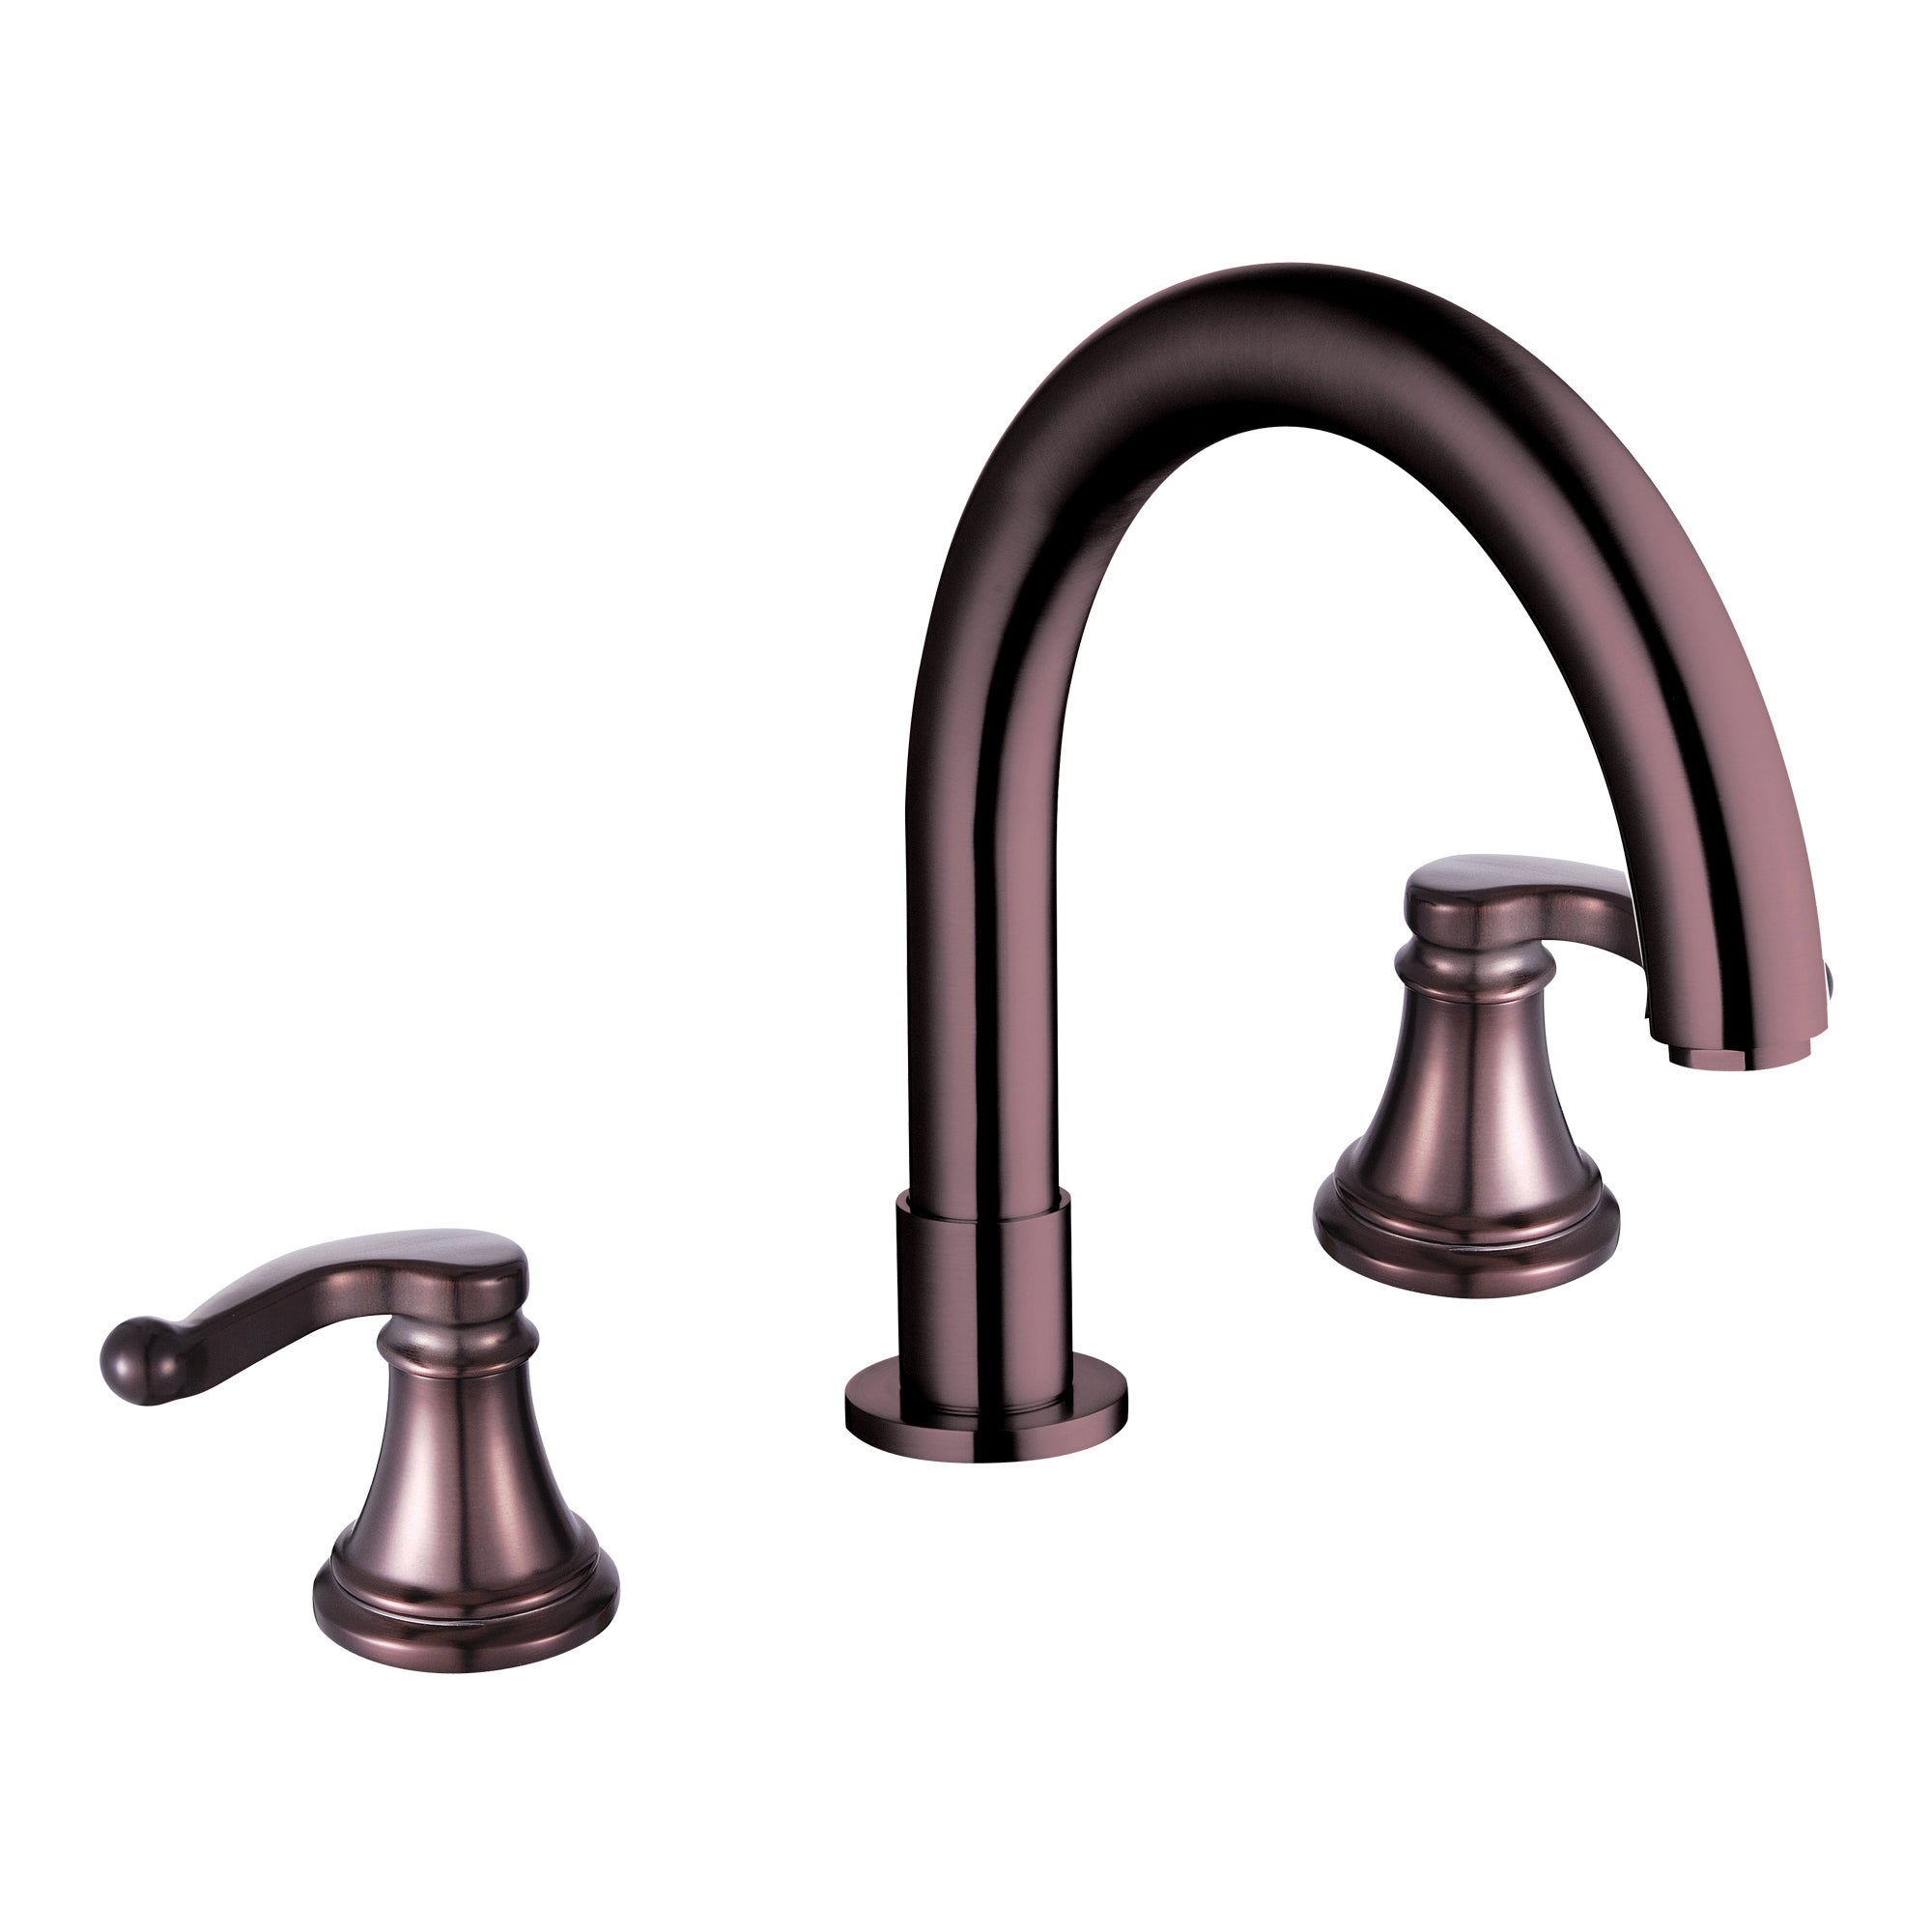 Yosemite Two Handle Widespread Tub Faucet, Bronze